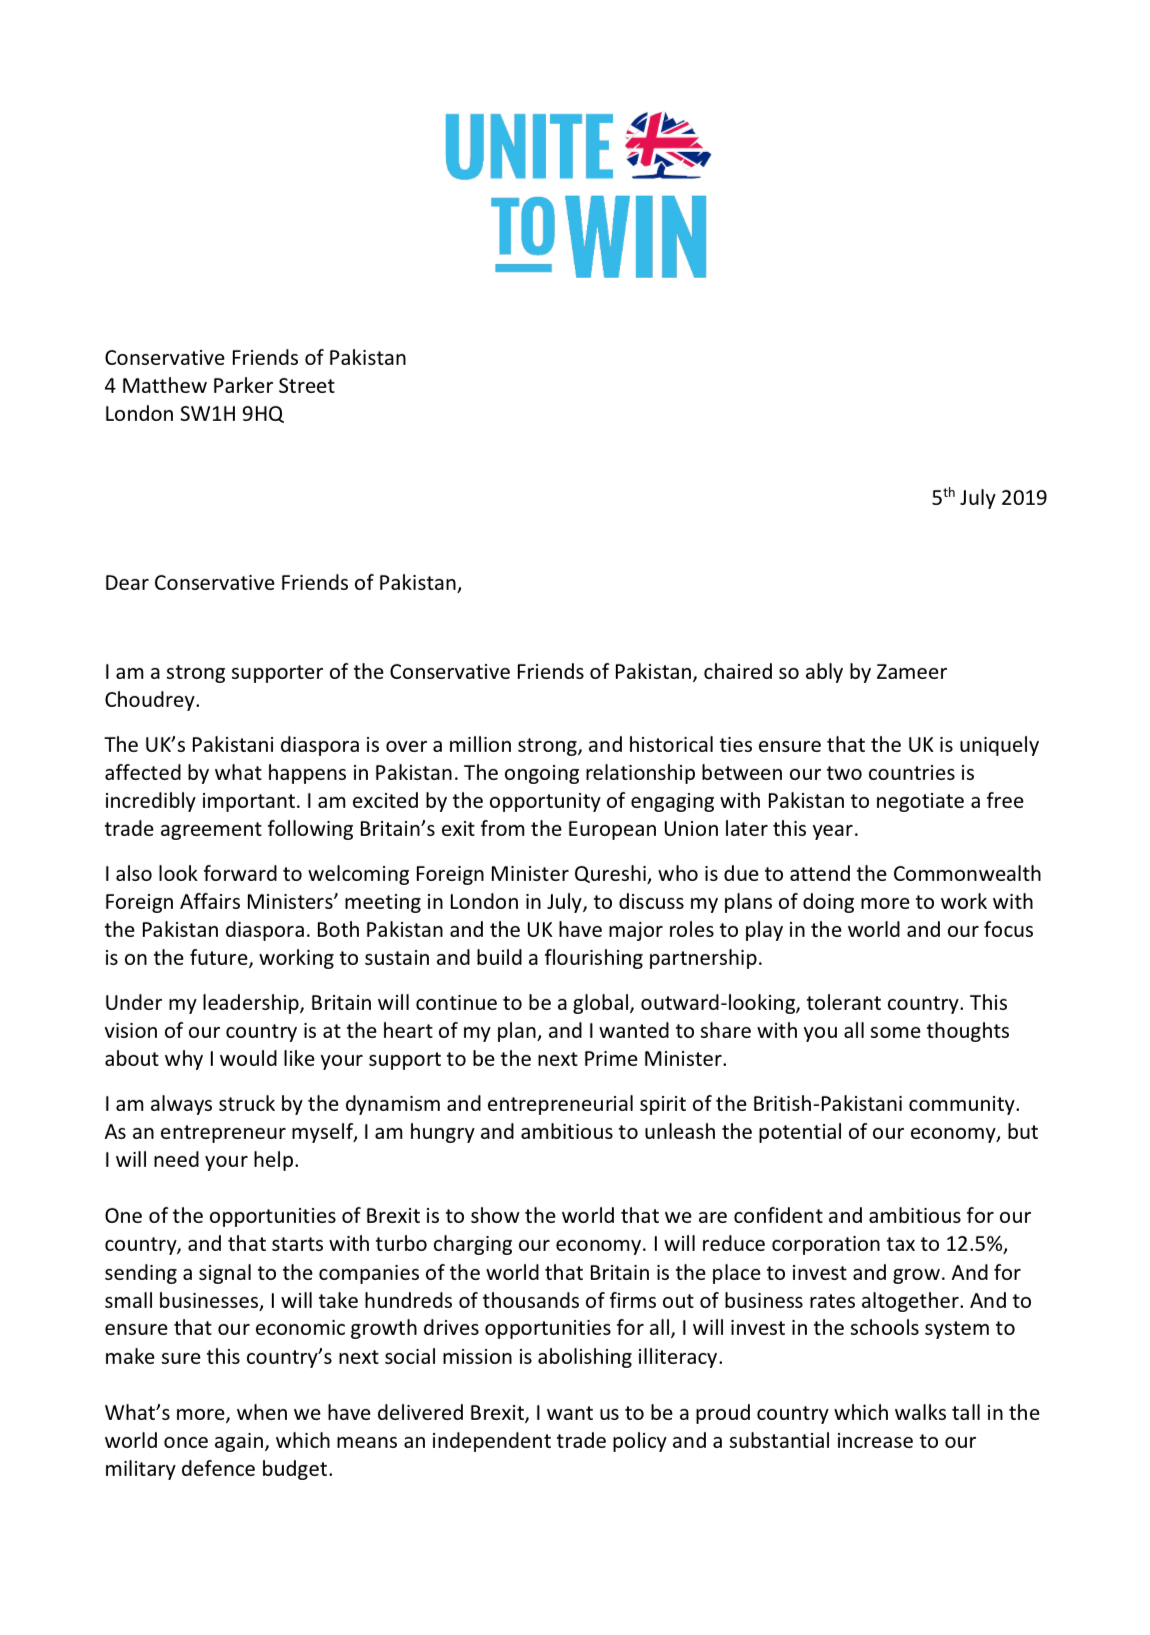 Jeremy Hunt's letter to CFOP